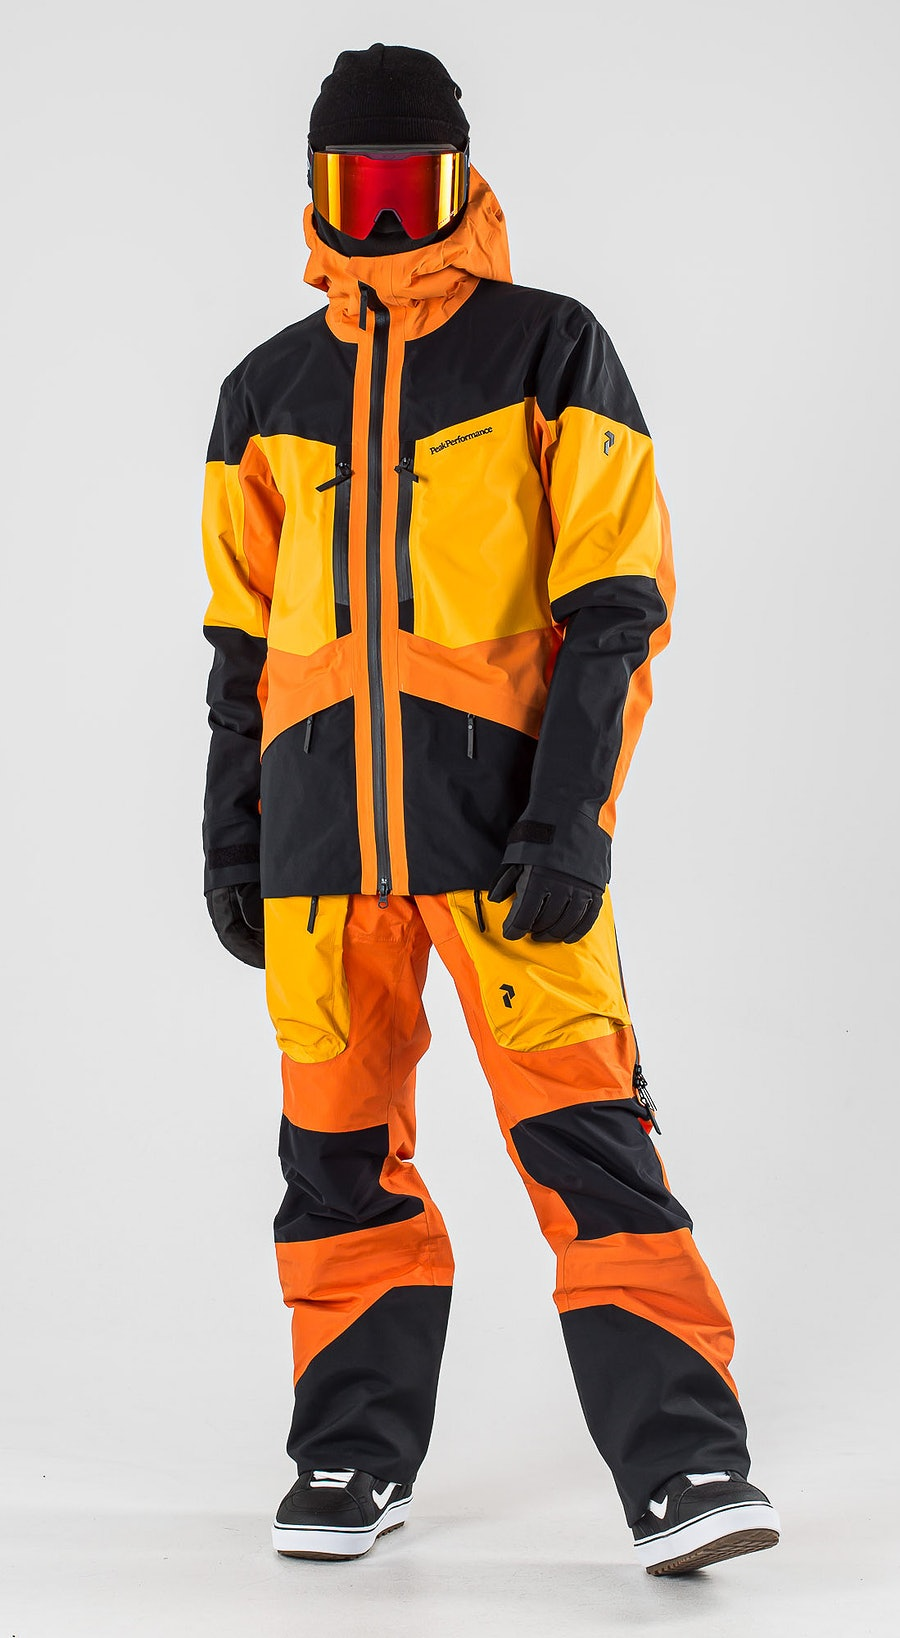 Peak Performance Gravity Orange Altitude Snowboardkläder Multi